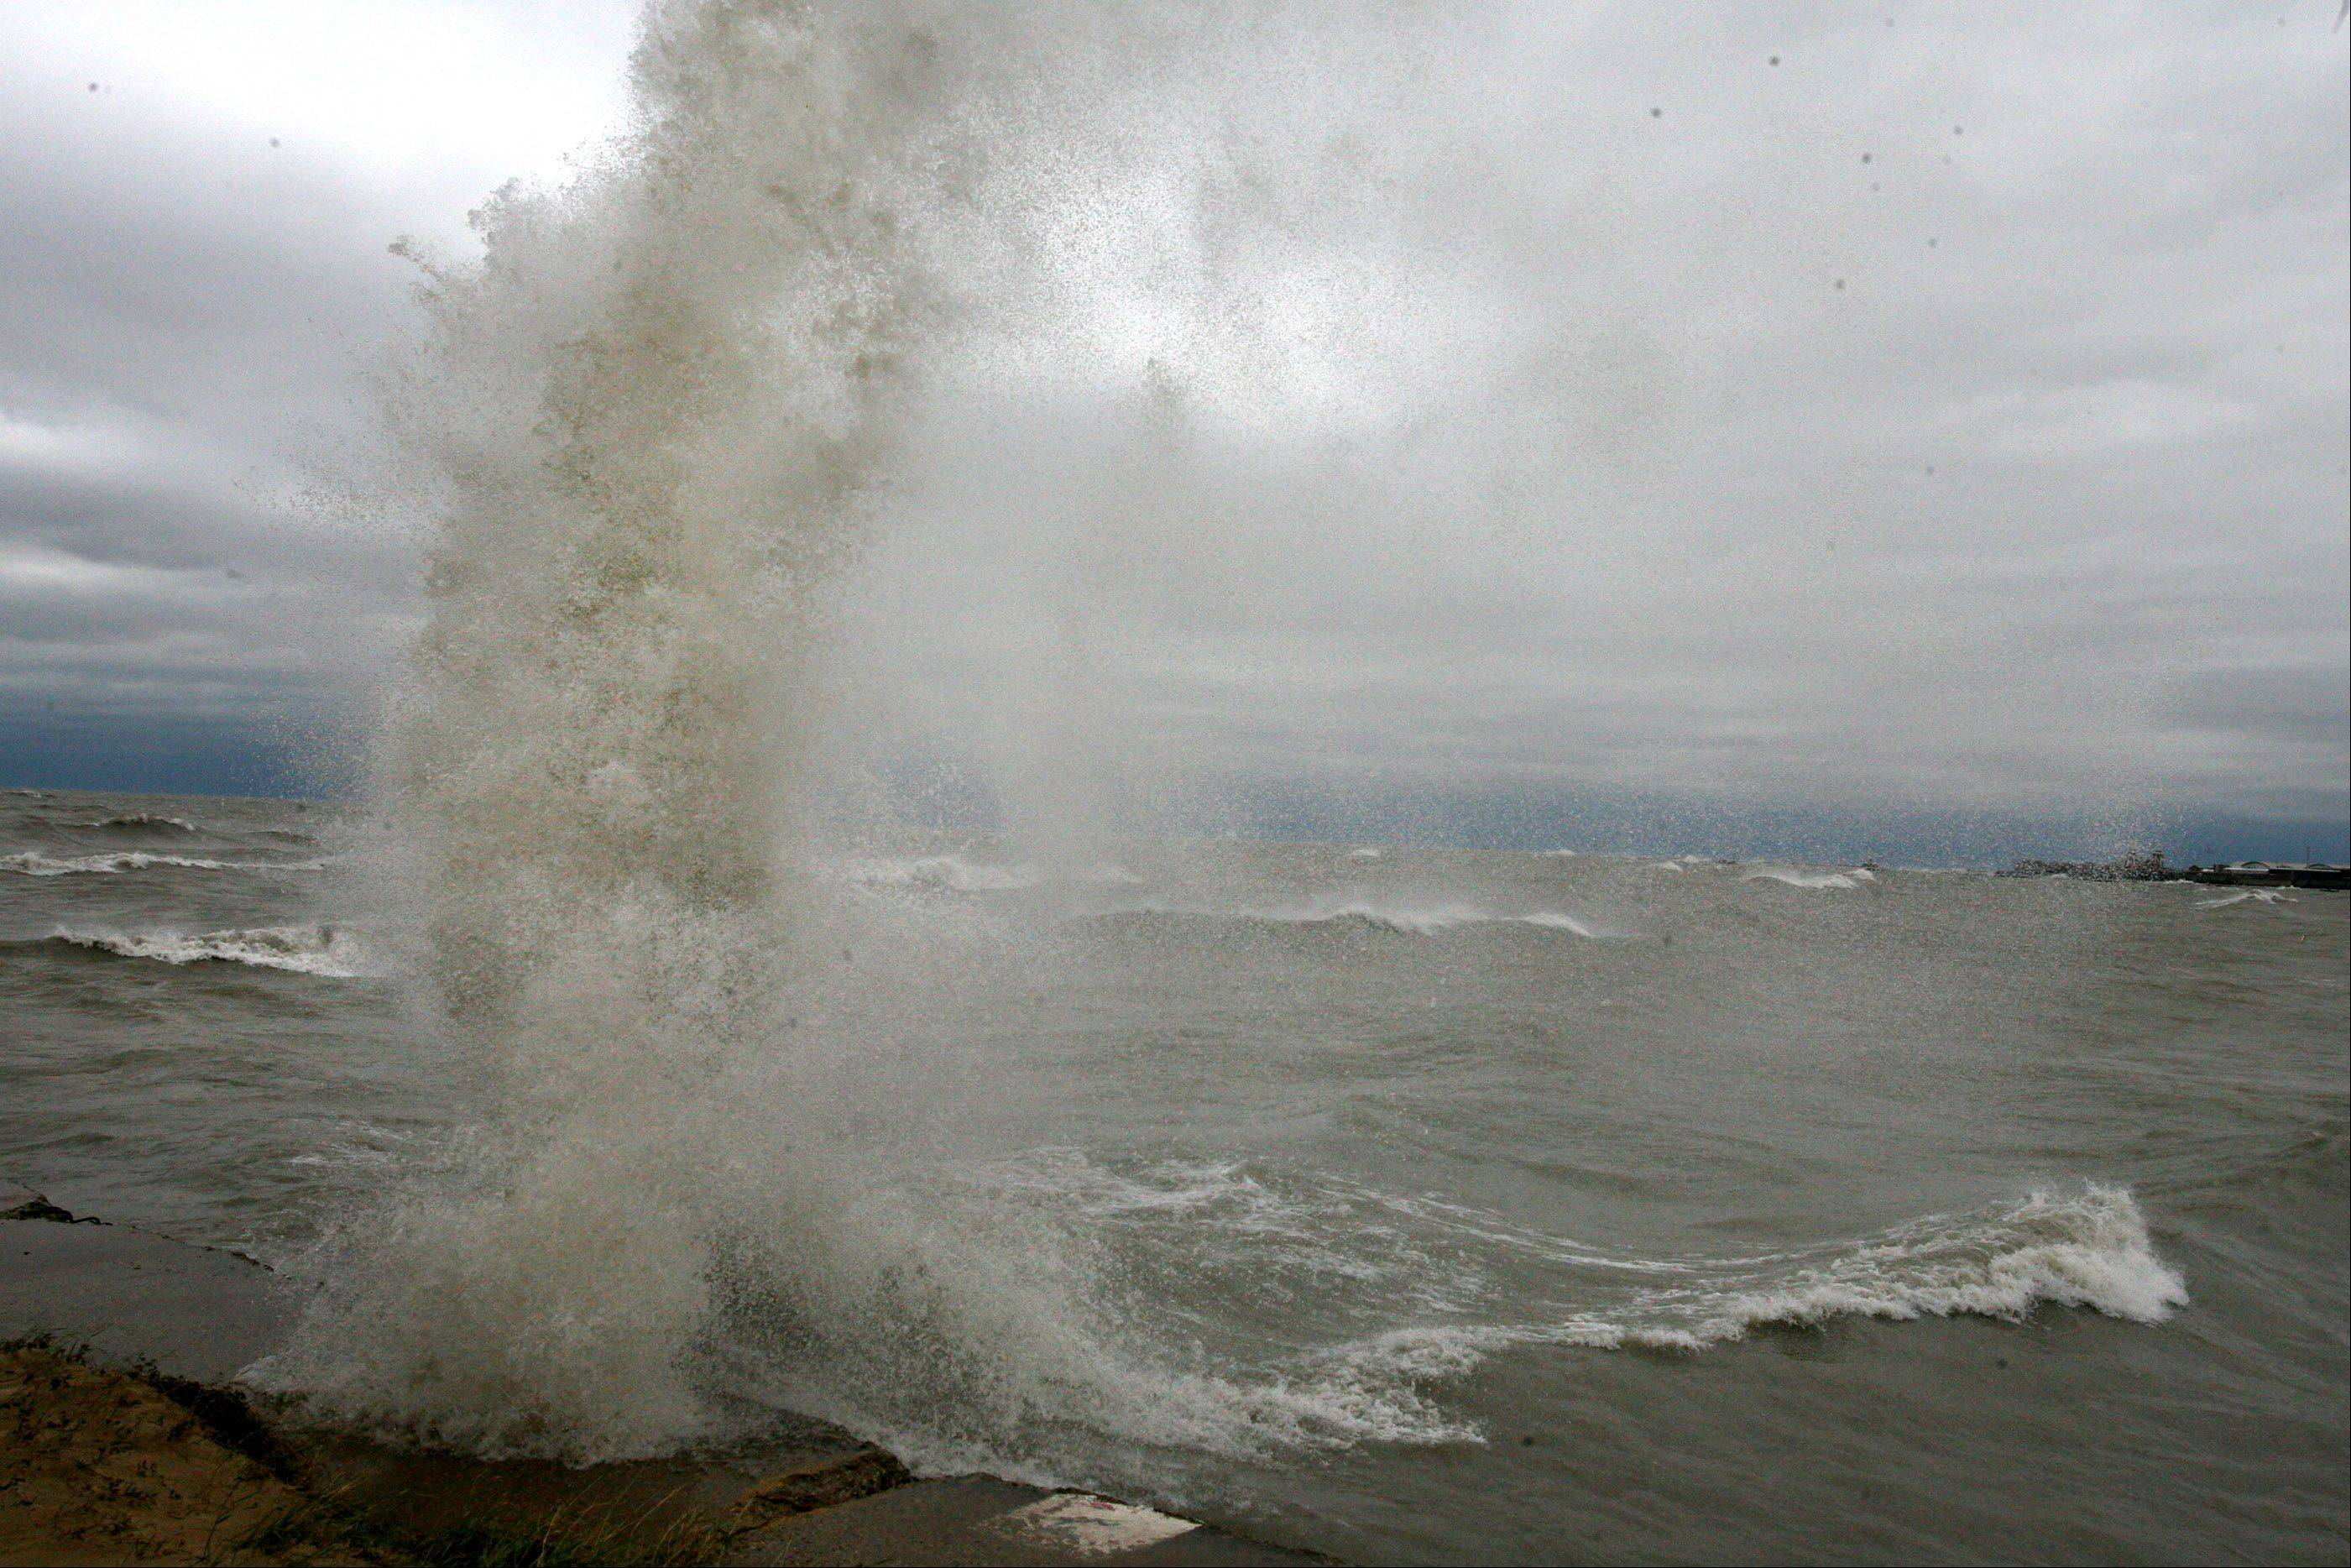 Giant waves batter Lake Michigan shoreline at North Avenue Beach in Chicago on Tuesday, October 30.